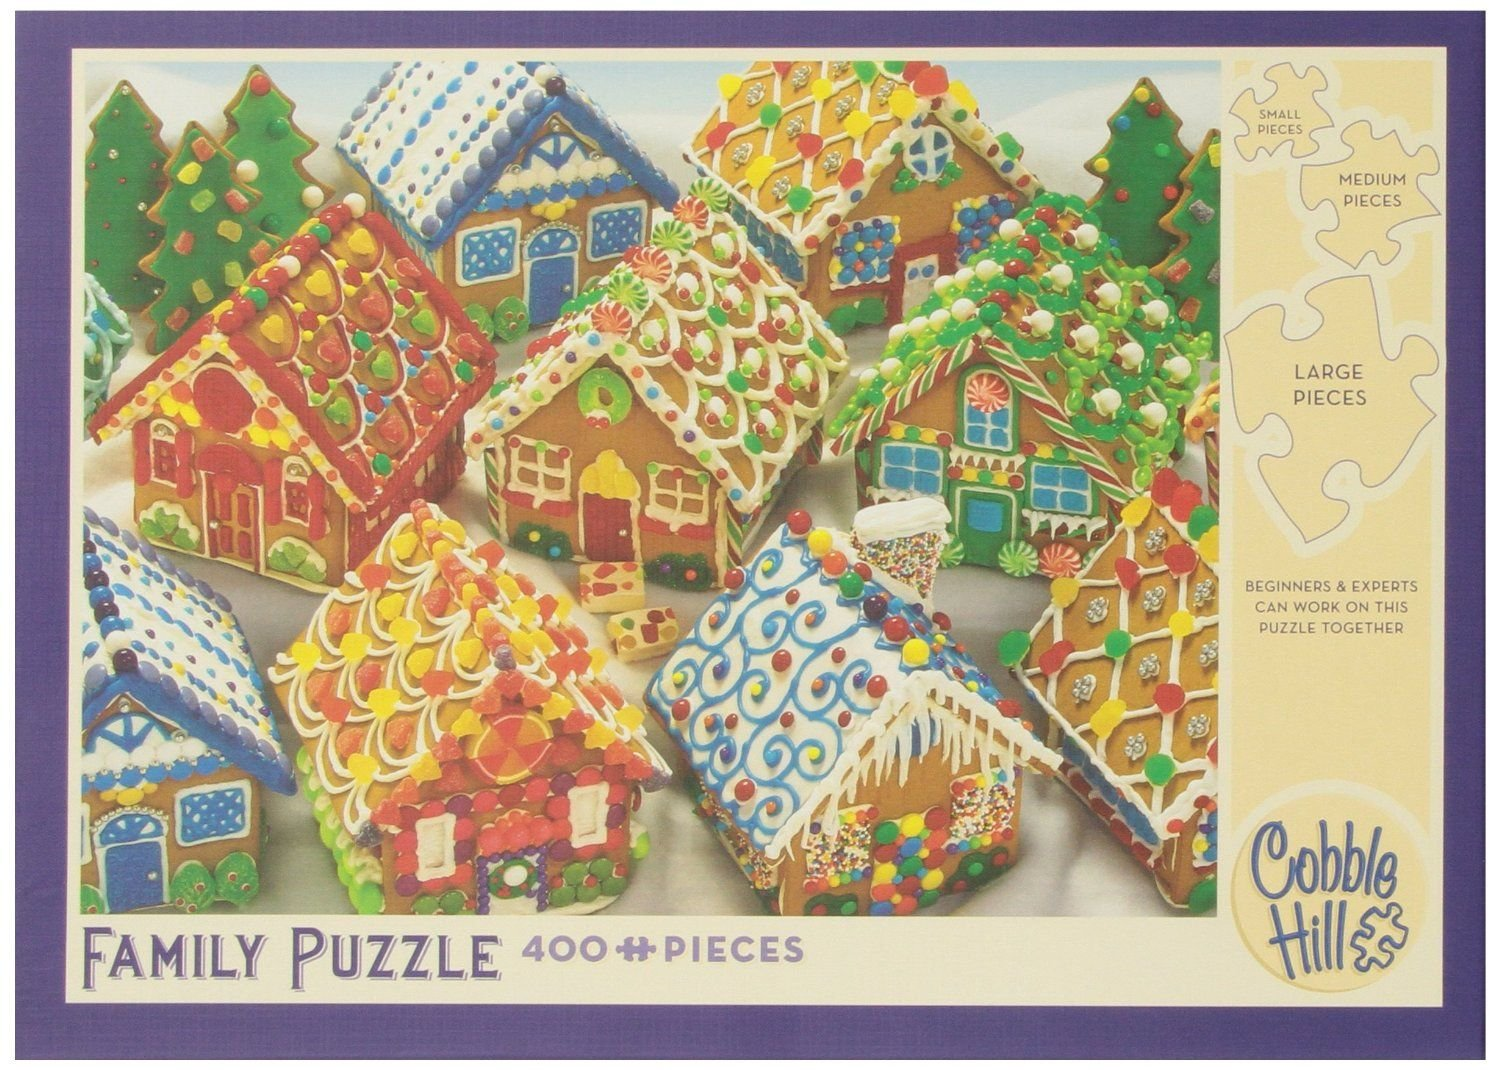 Cobble Hill Gingerbread Houses 400 Piece Family Puzzle